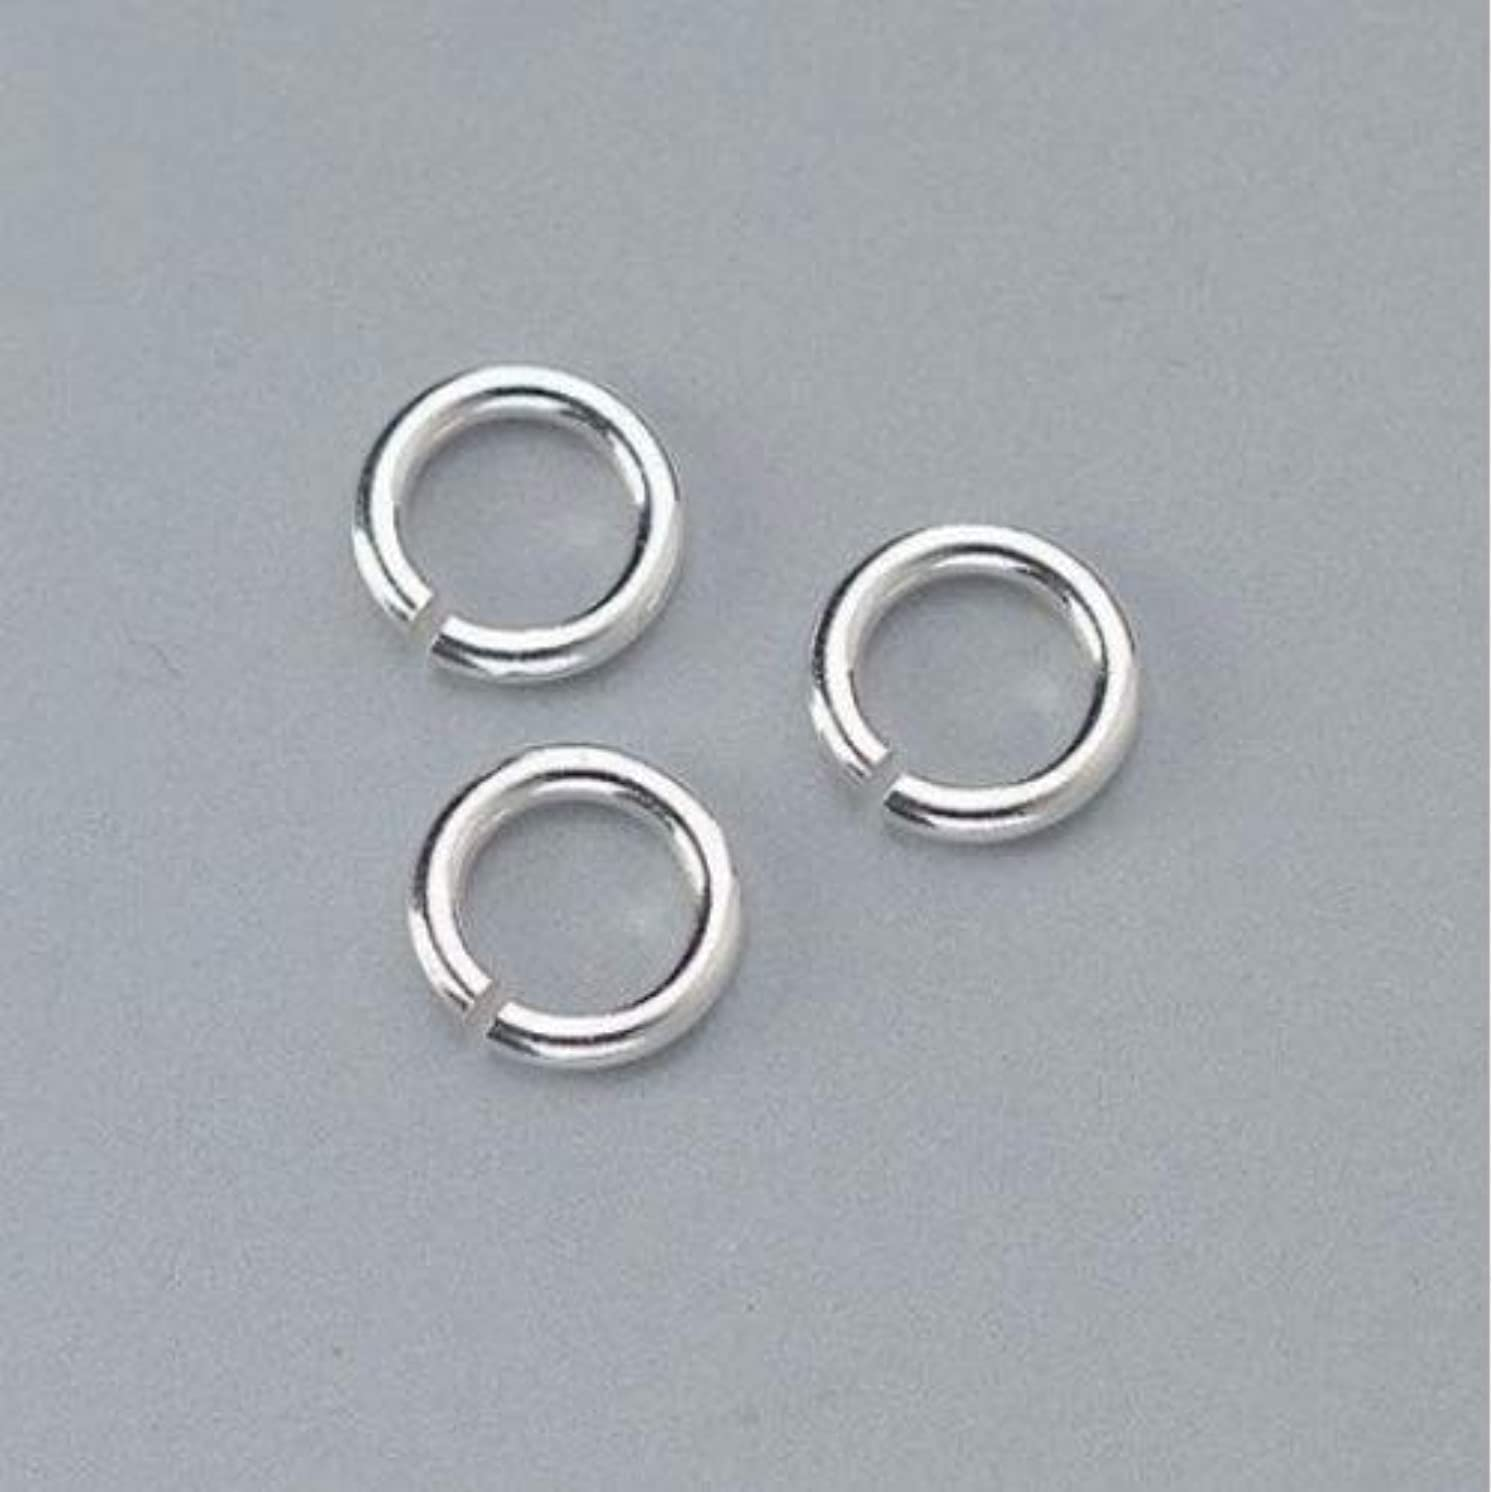 Efco Jewellery Jump Ring Round 5 mm 4 pcs. 925 Silver, 2 x 2 x 2 cm